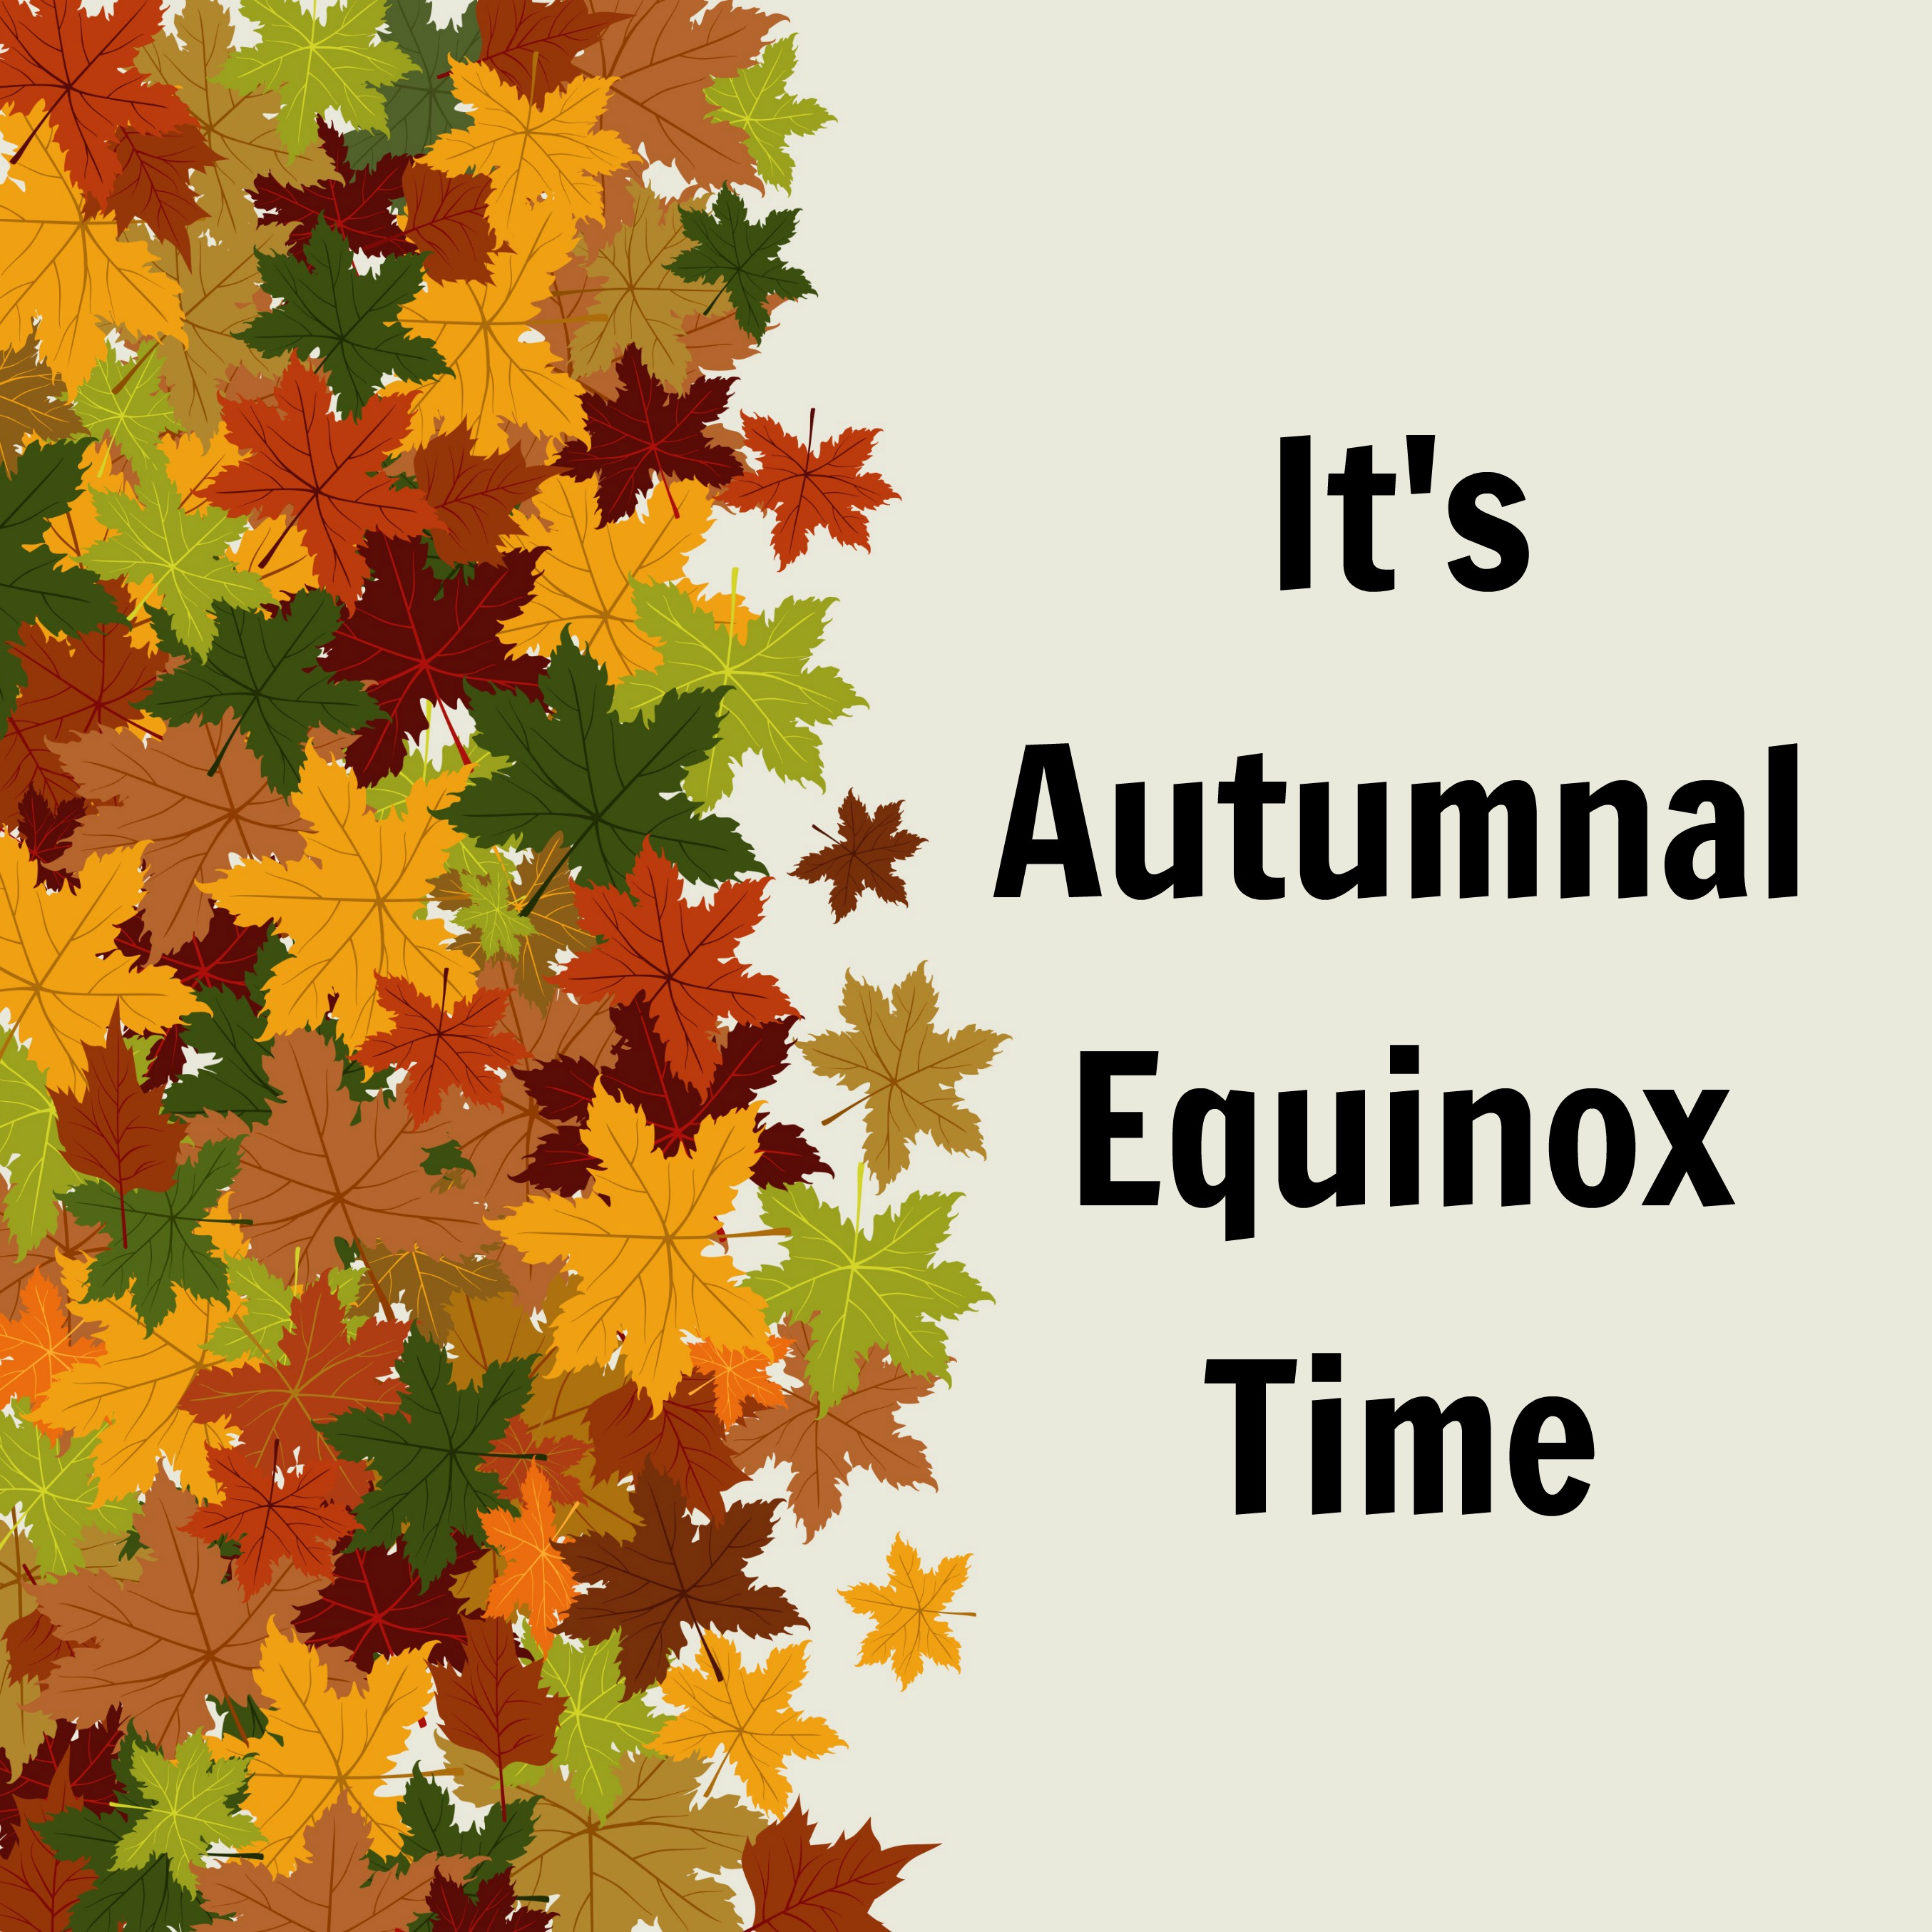 it's autumn equinox time